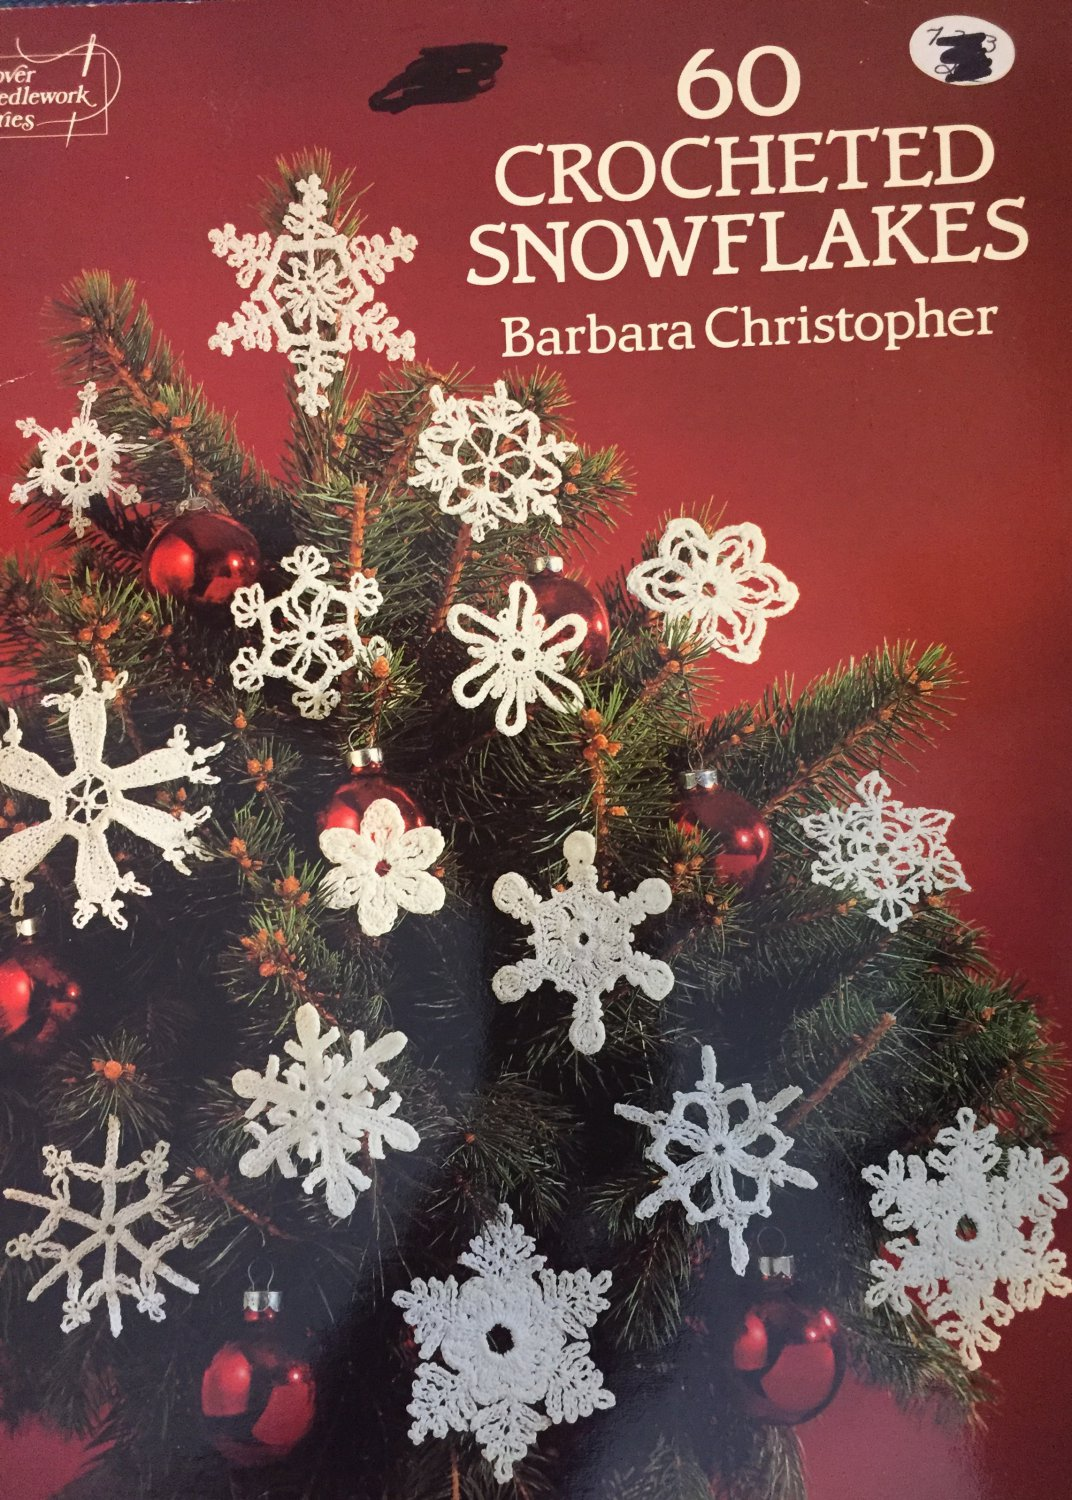 60 Crocheted Snowflakes by Barbara Christopher Dover Needlework Series Thread Crochet Patterns